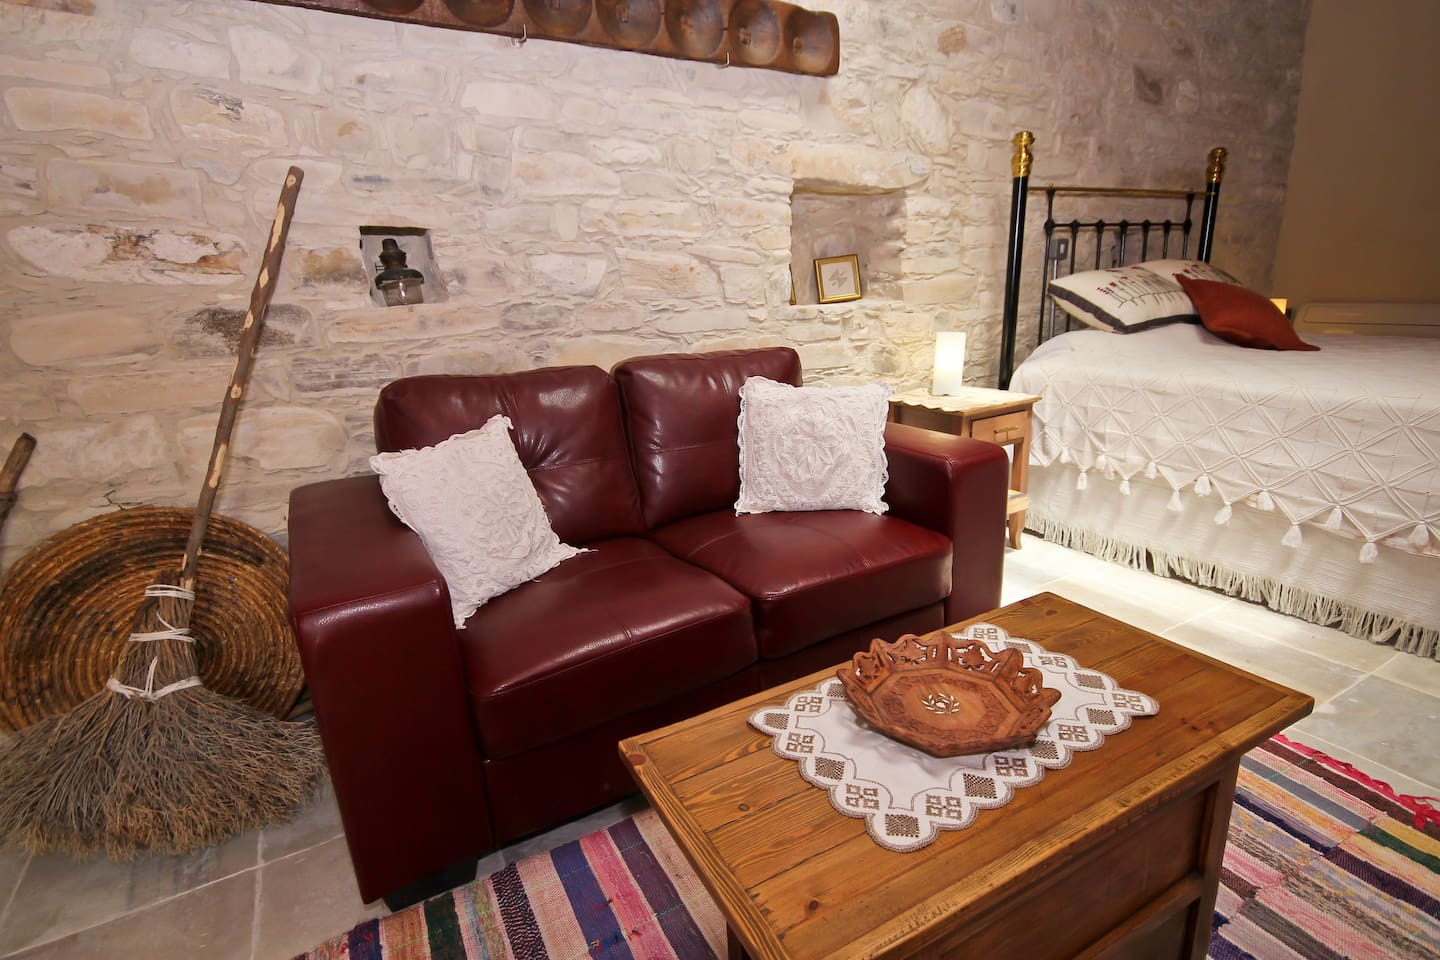 The sitting and sleeping area features several traditional Cypriot items.